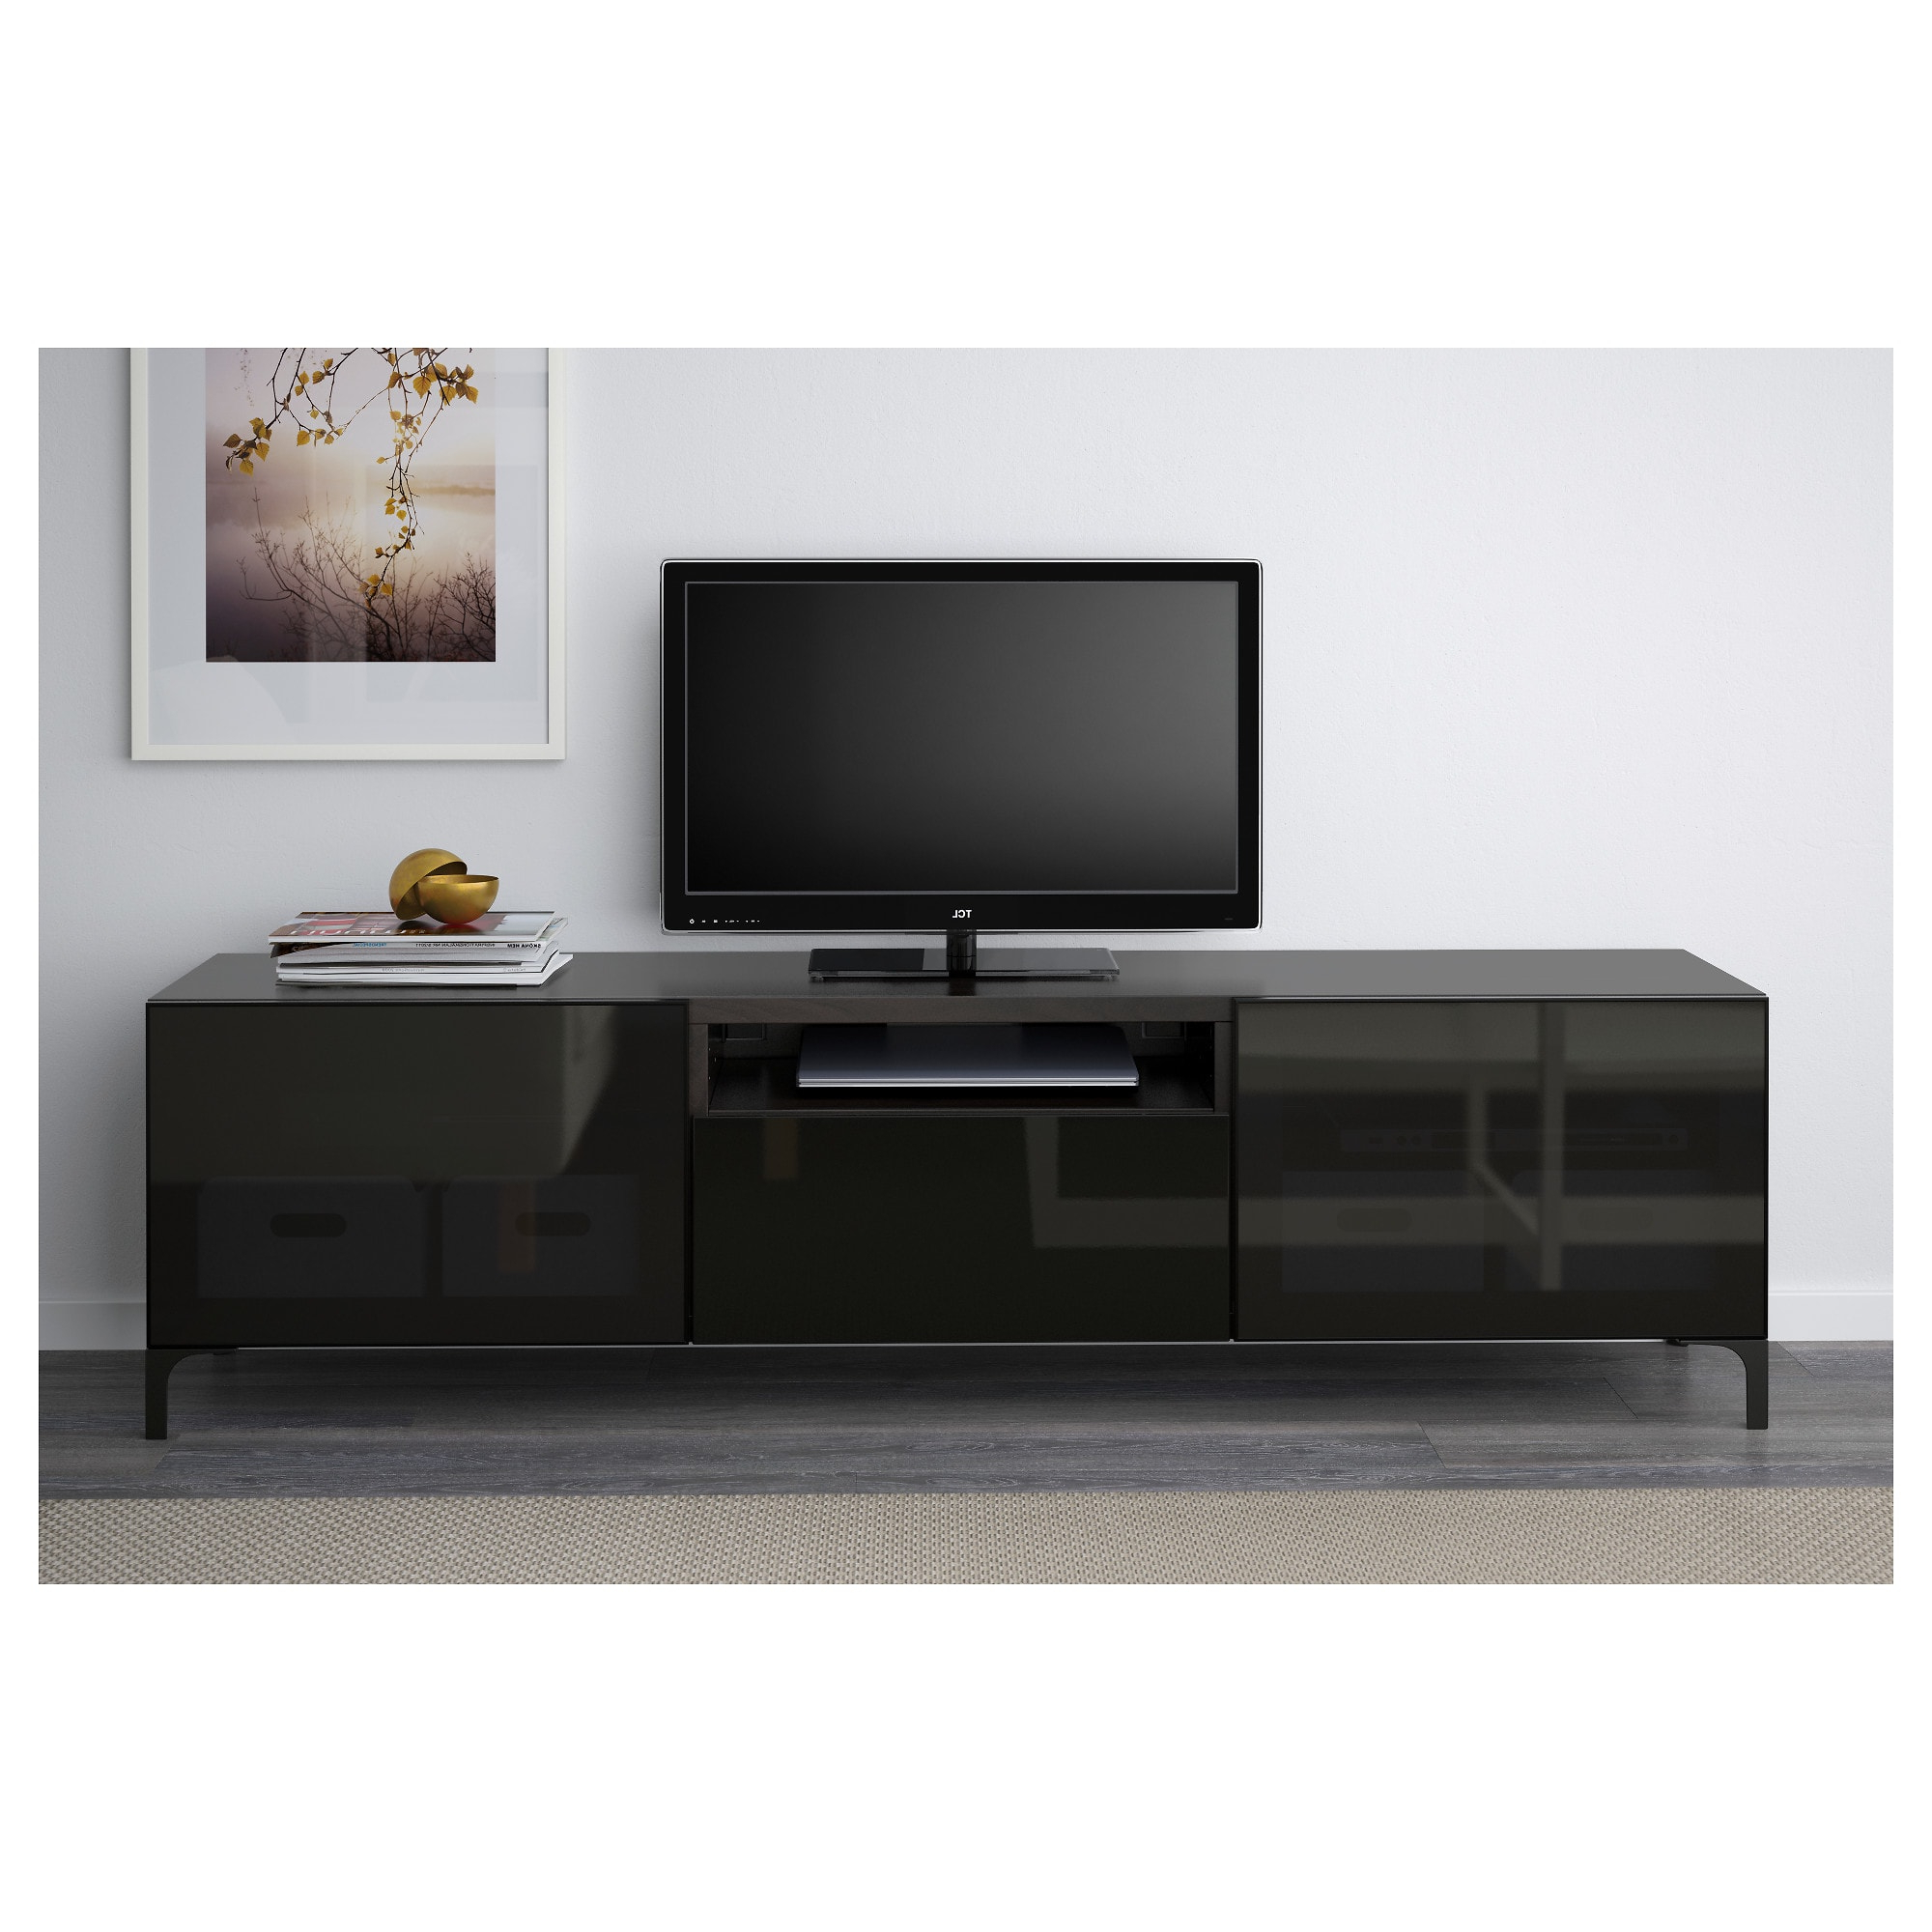 White Gloss Tv Cabinets In Fashionable Bestå Tv Bench Black Brown/selsviken High Gloss/black Smoked Glass (View 14 of 20)